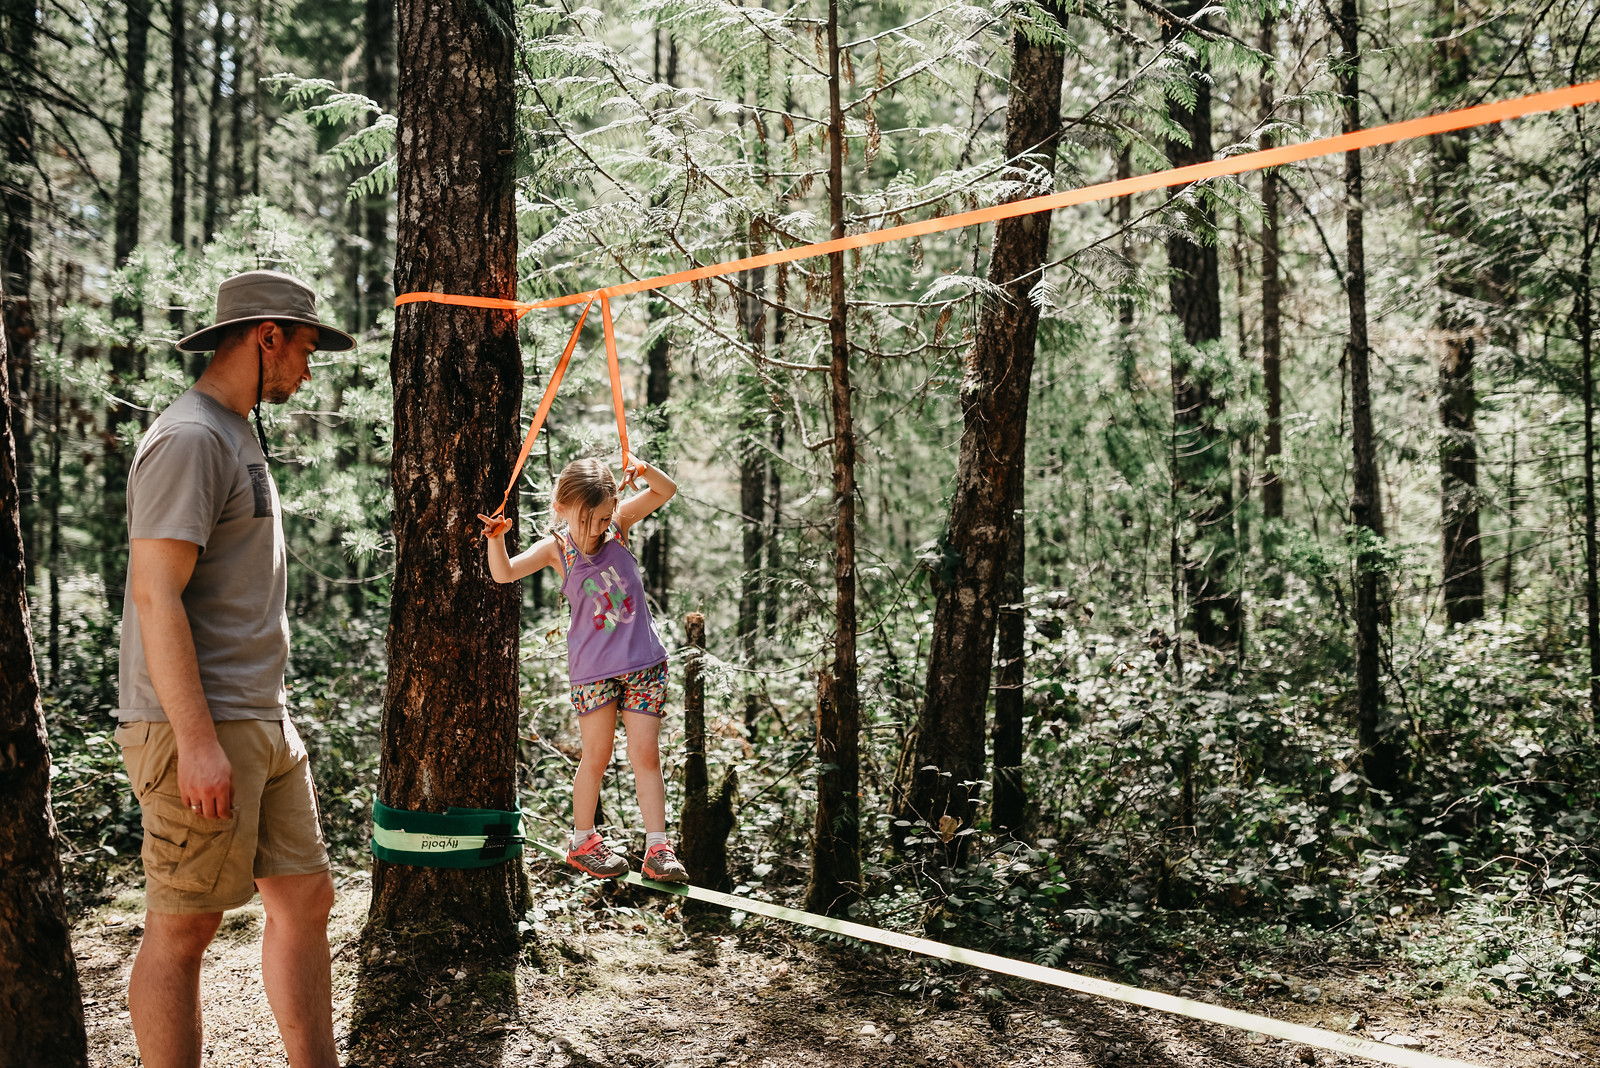 5 ways to make camping extra fun for kids by Jessica Nave for Hike it Baby